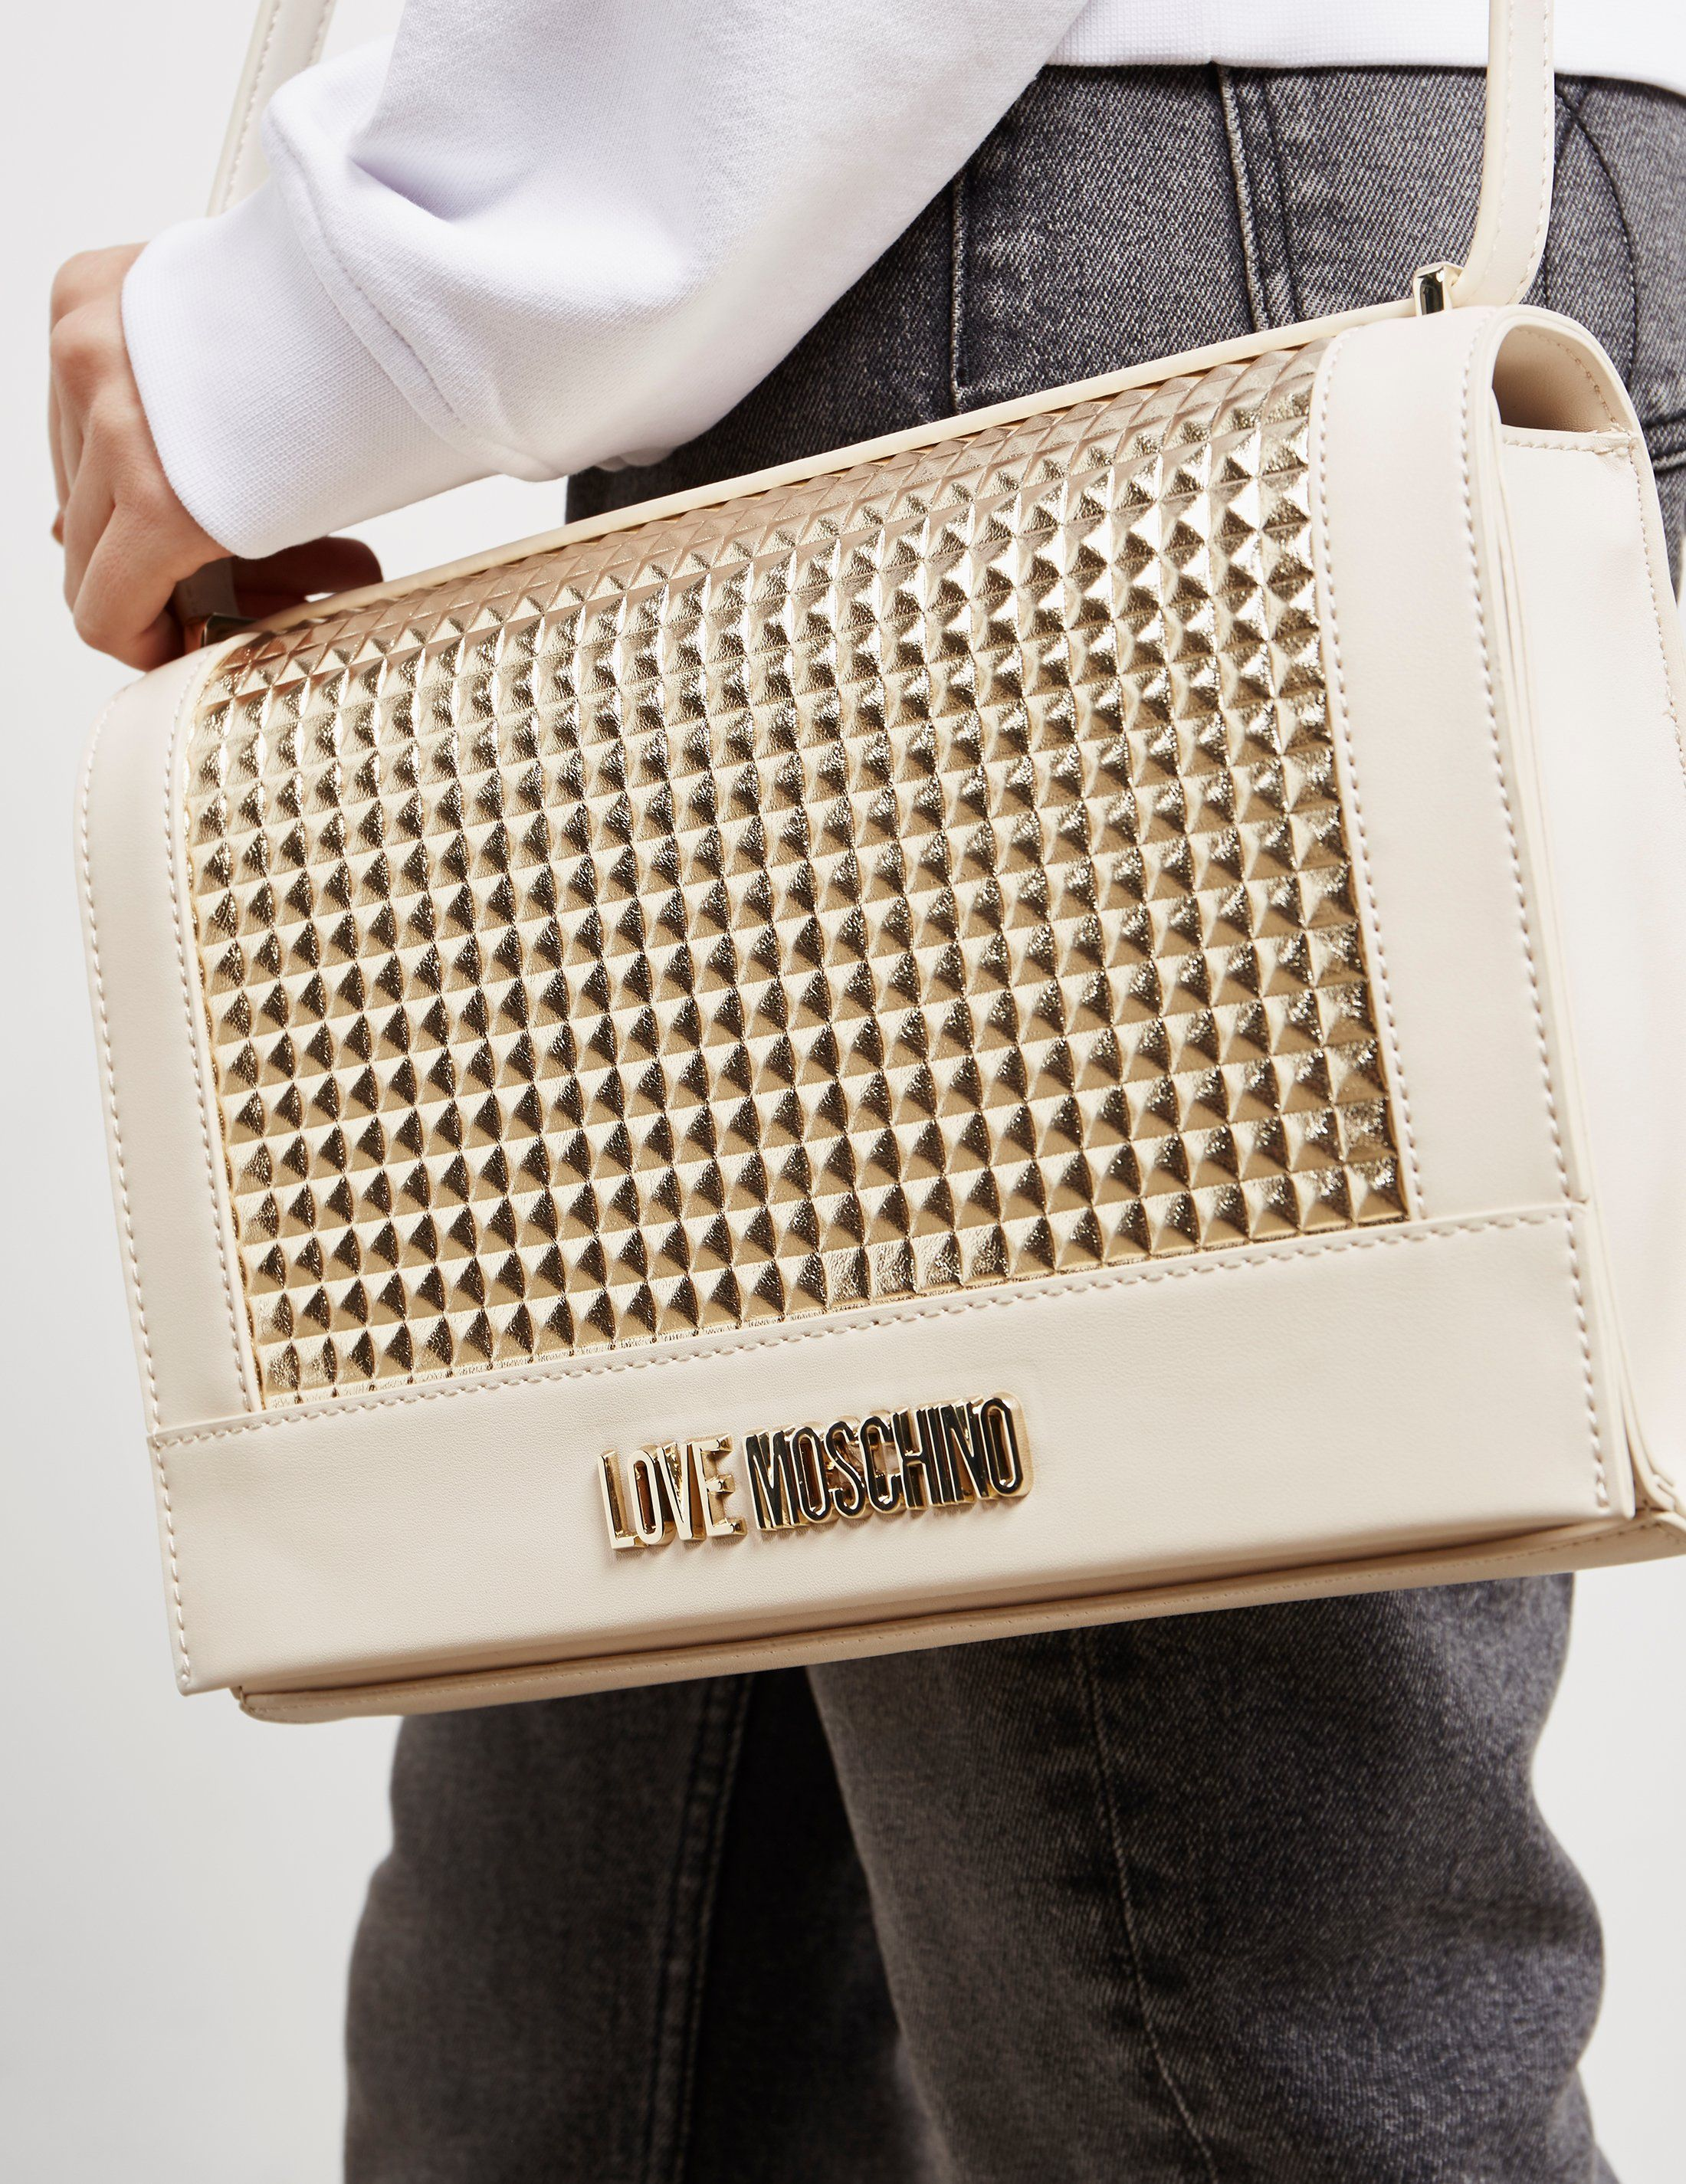 Love Moschino Soft Stud Shoulder Bag